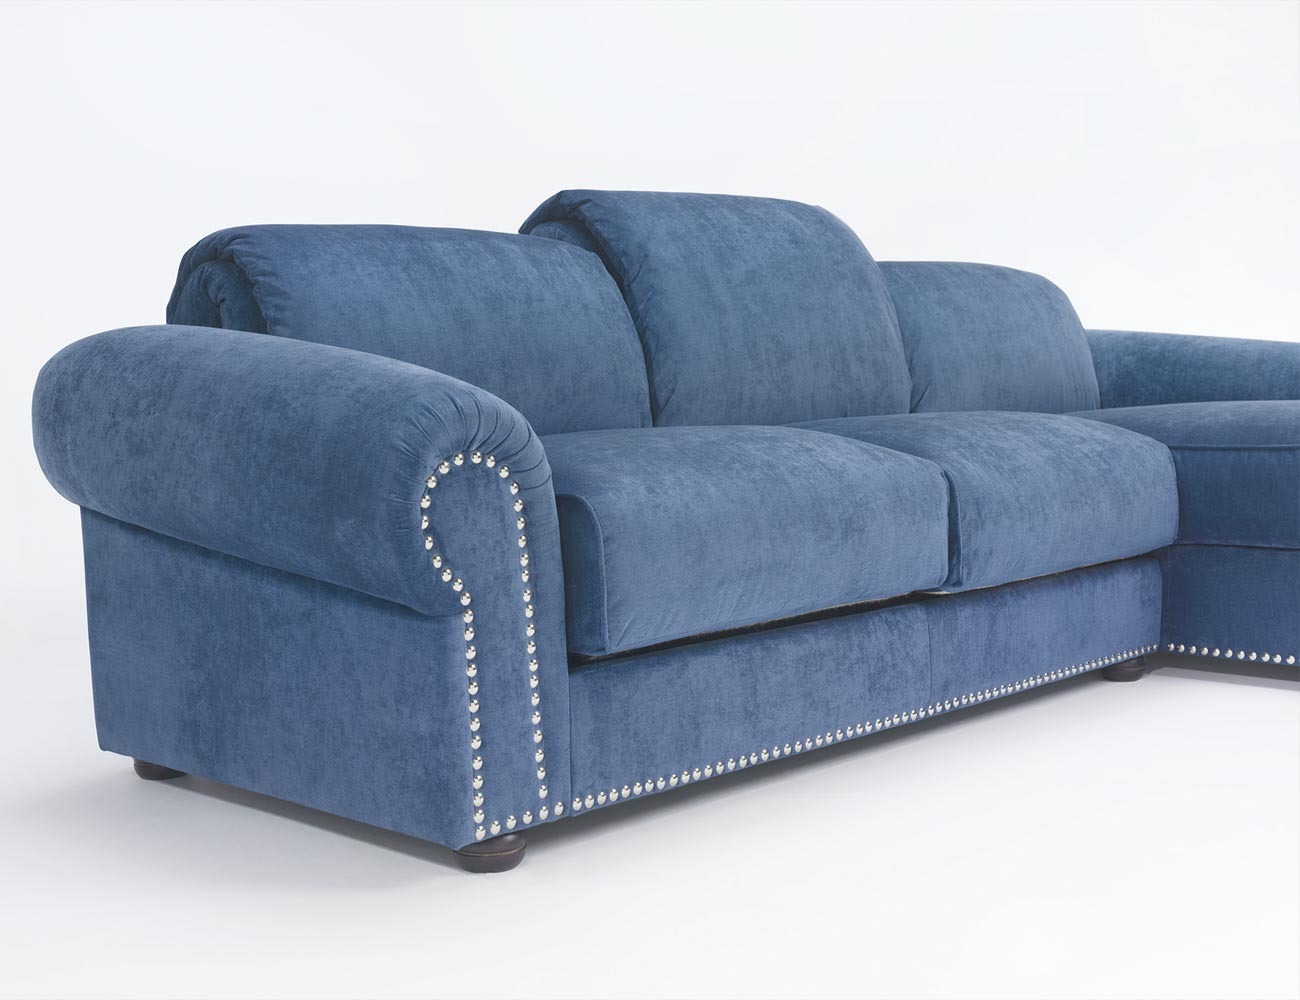 Sofa chaiselongue gran lujo decorativo azul 129